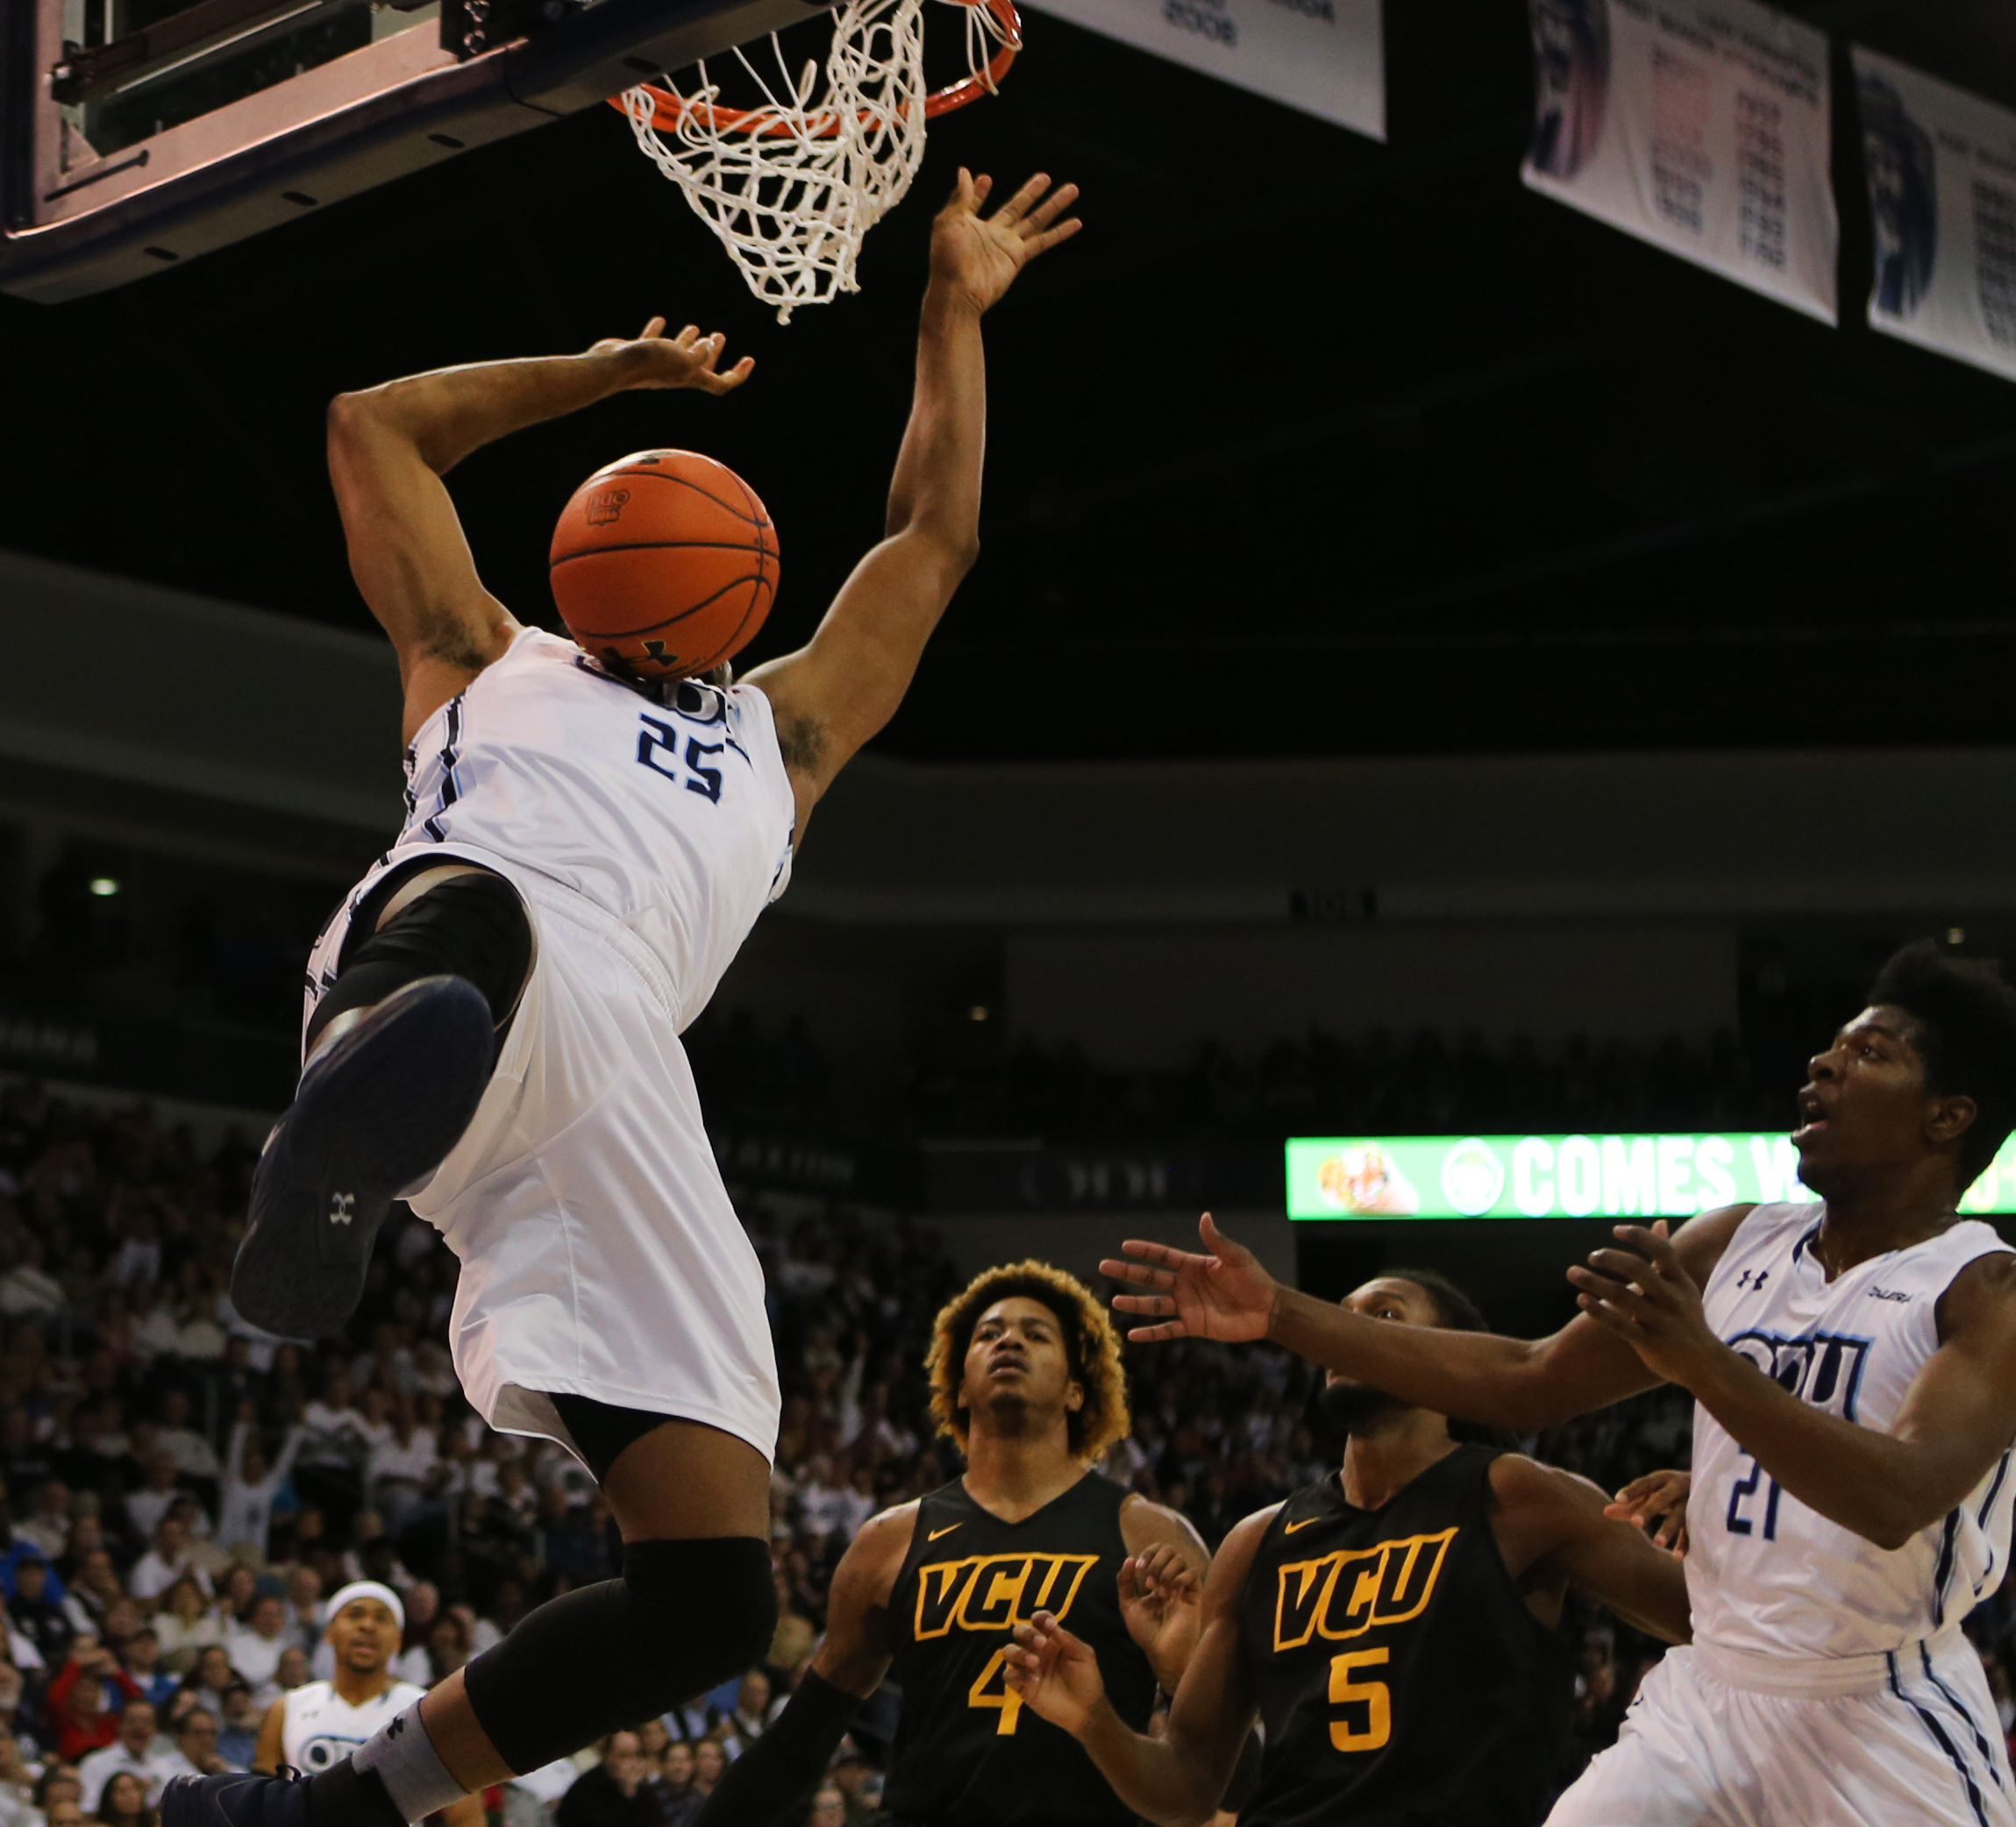 Old Dominion's Brandan Stith dunks in the first half against VCU.